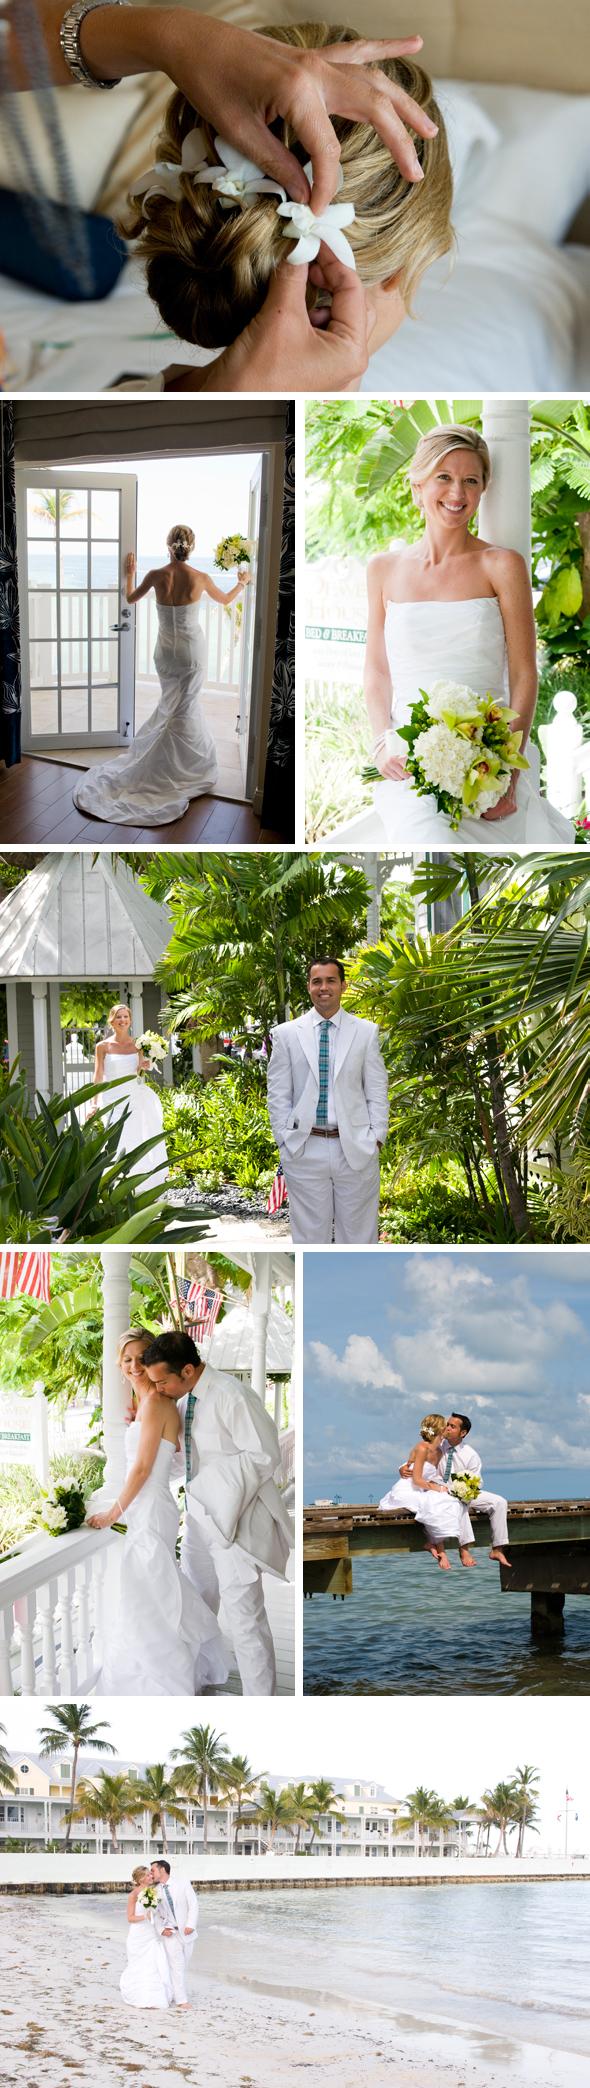 key west destination wedding Destination Wedding in Key West, FL